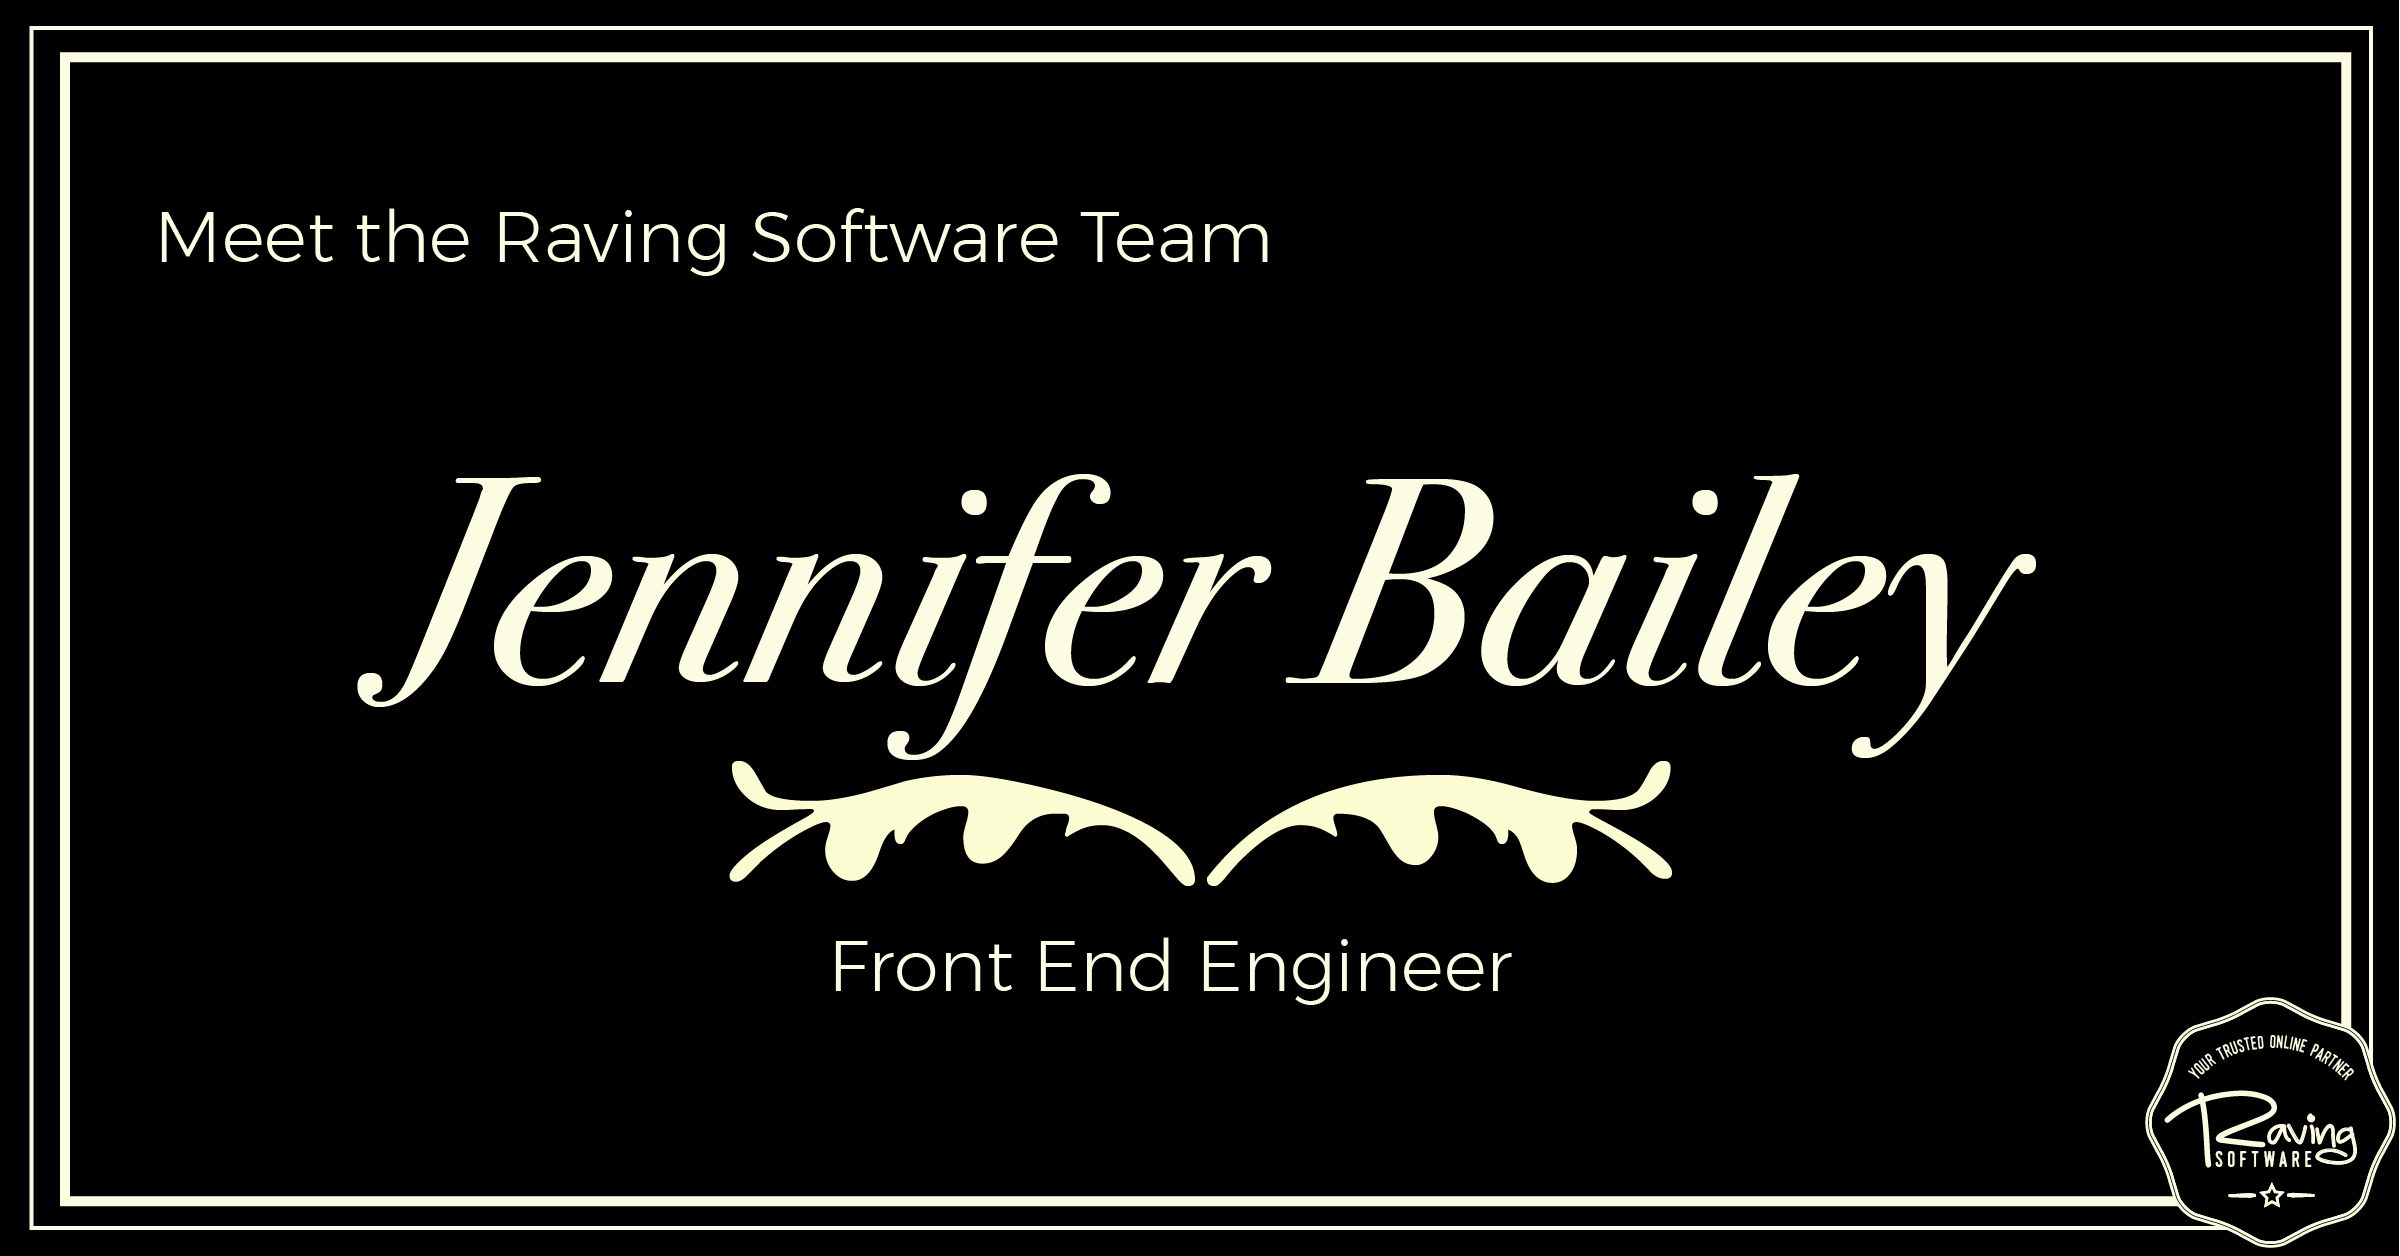 Meet Jennifer Bailey, our front end engineer.